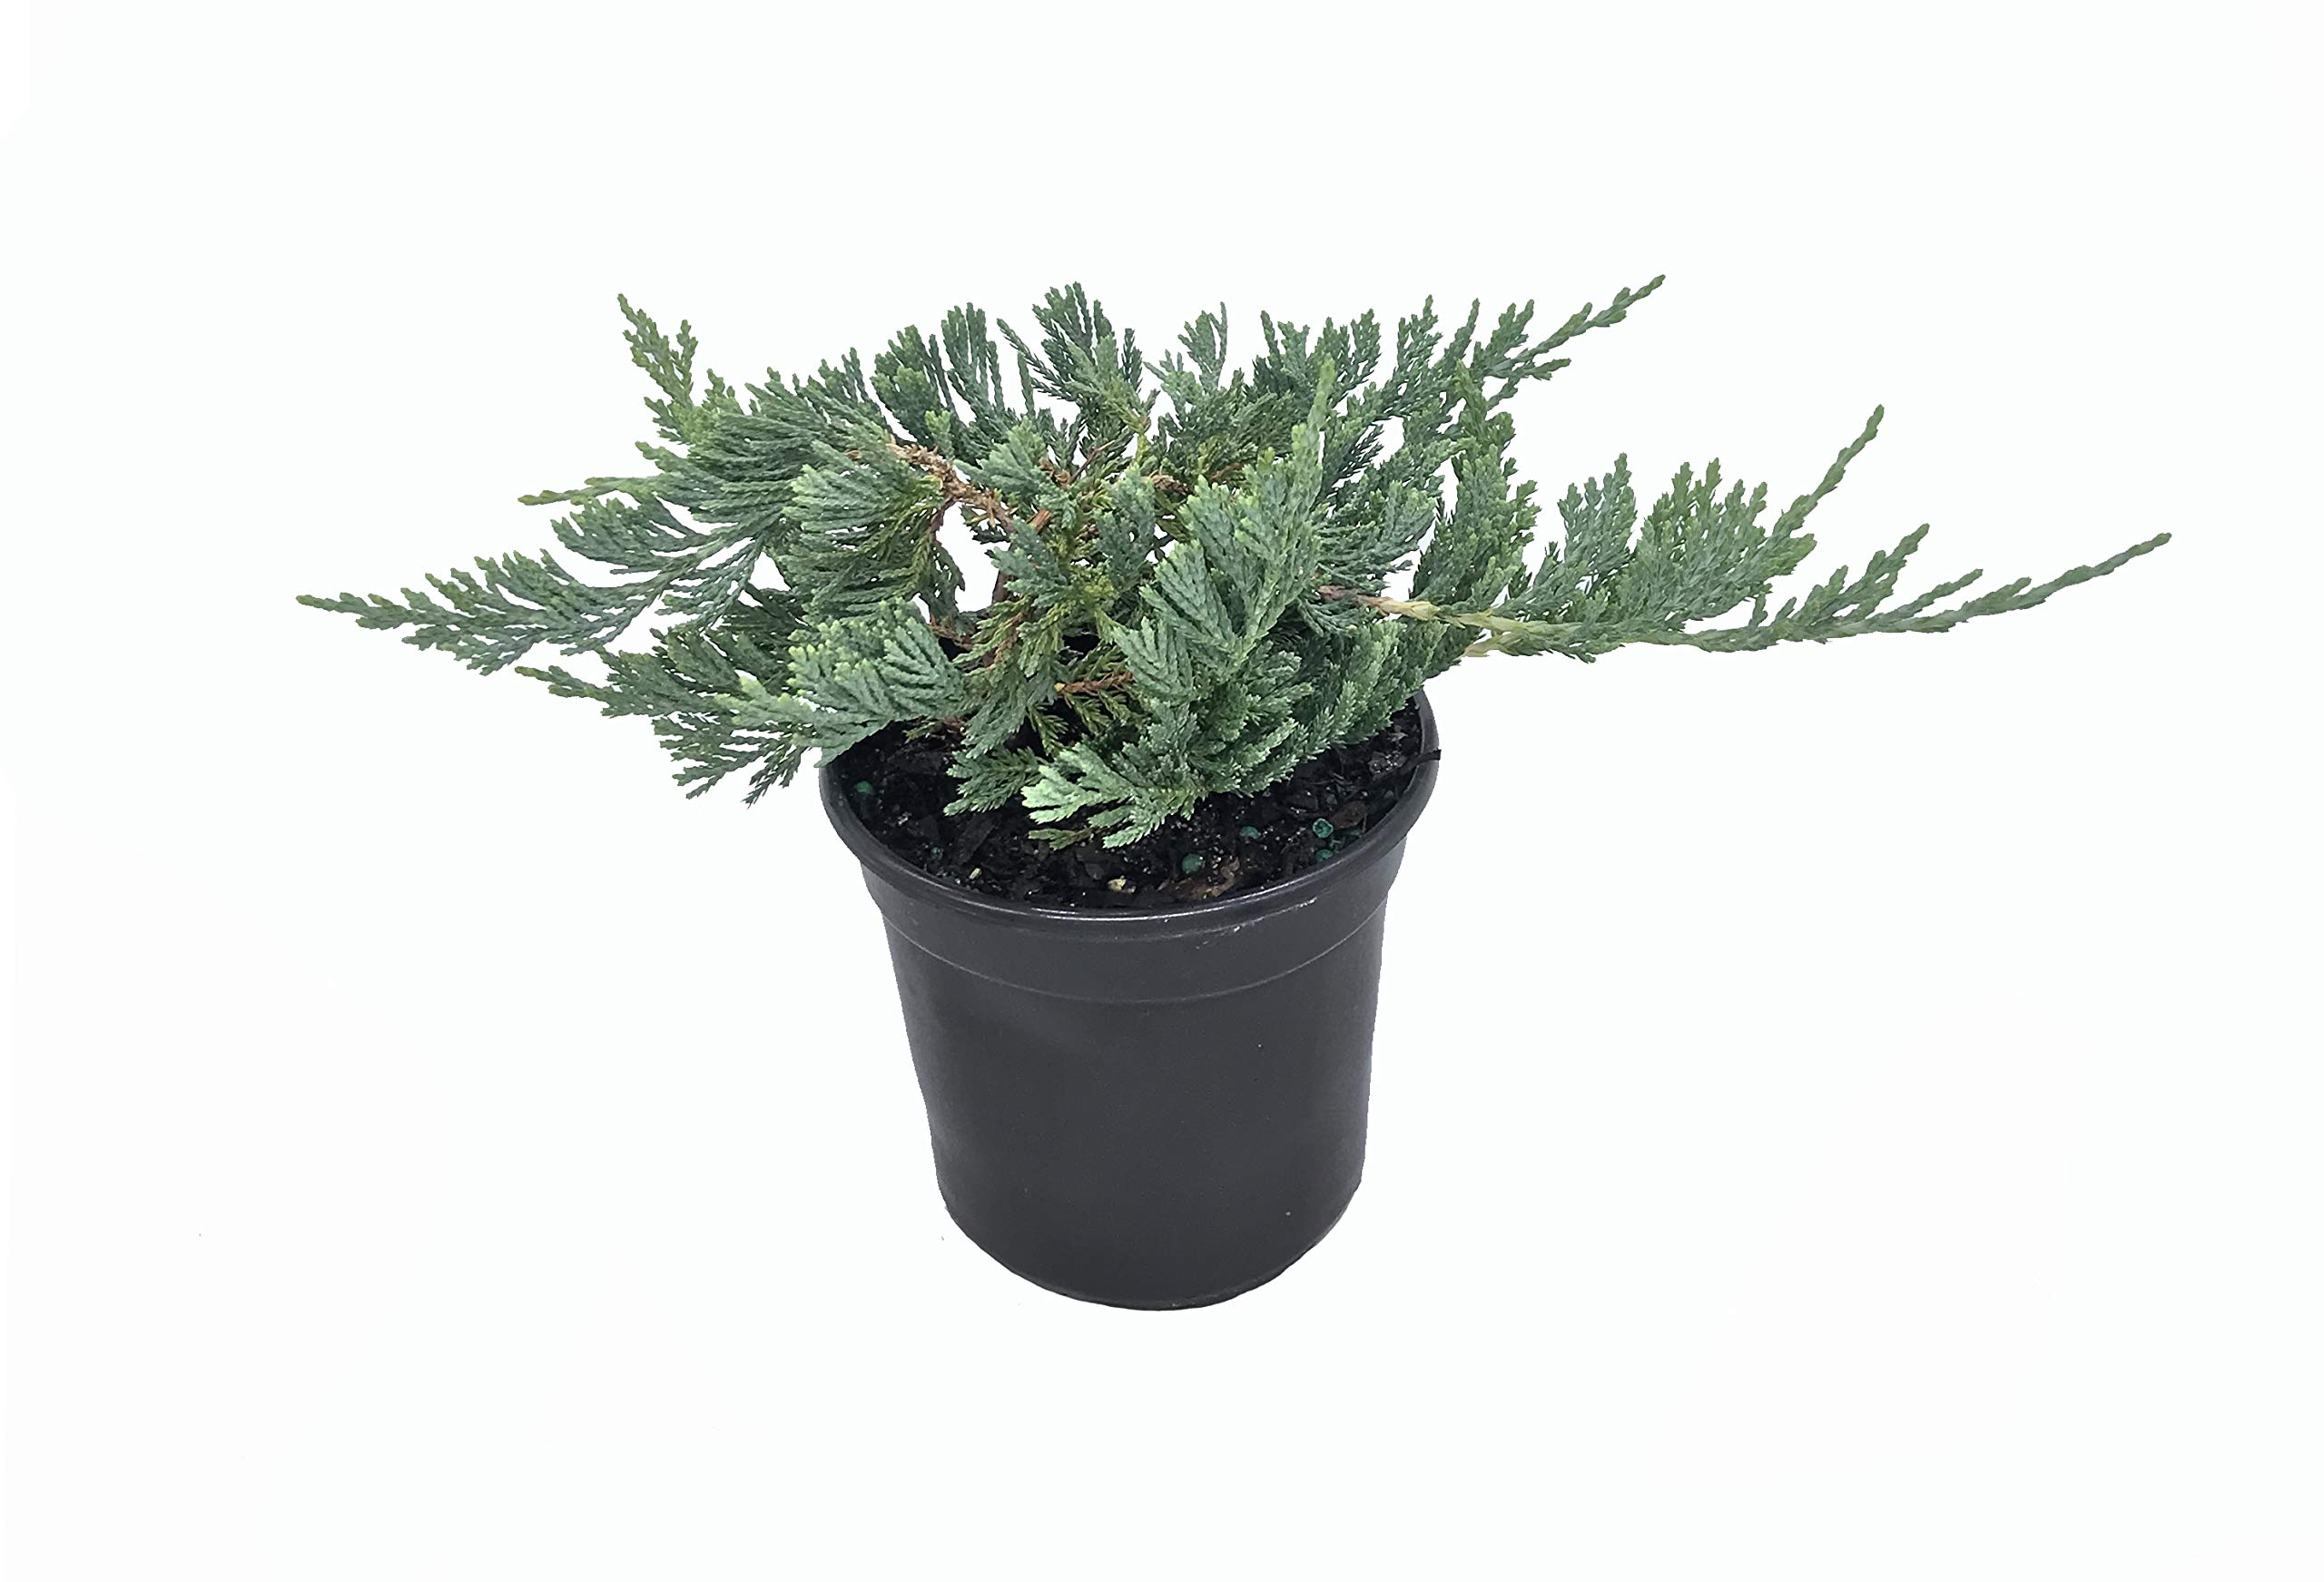 Blue Rug Juniper - 15 Live Plants - 4'' Container Low Maintenance Evergreen Ground Cover